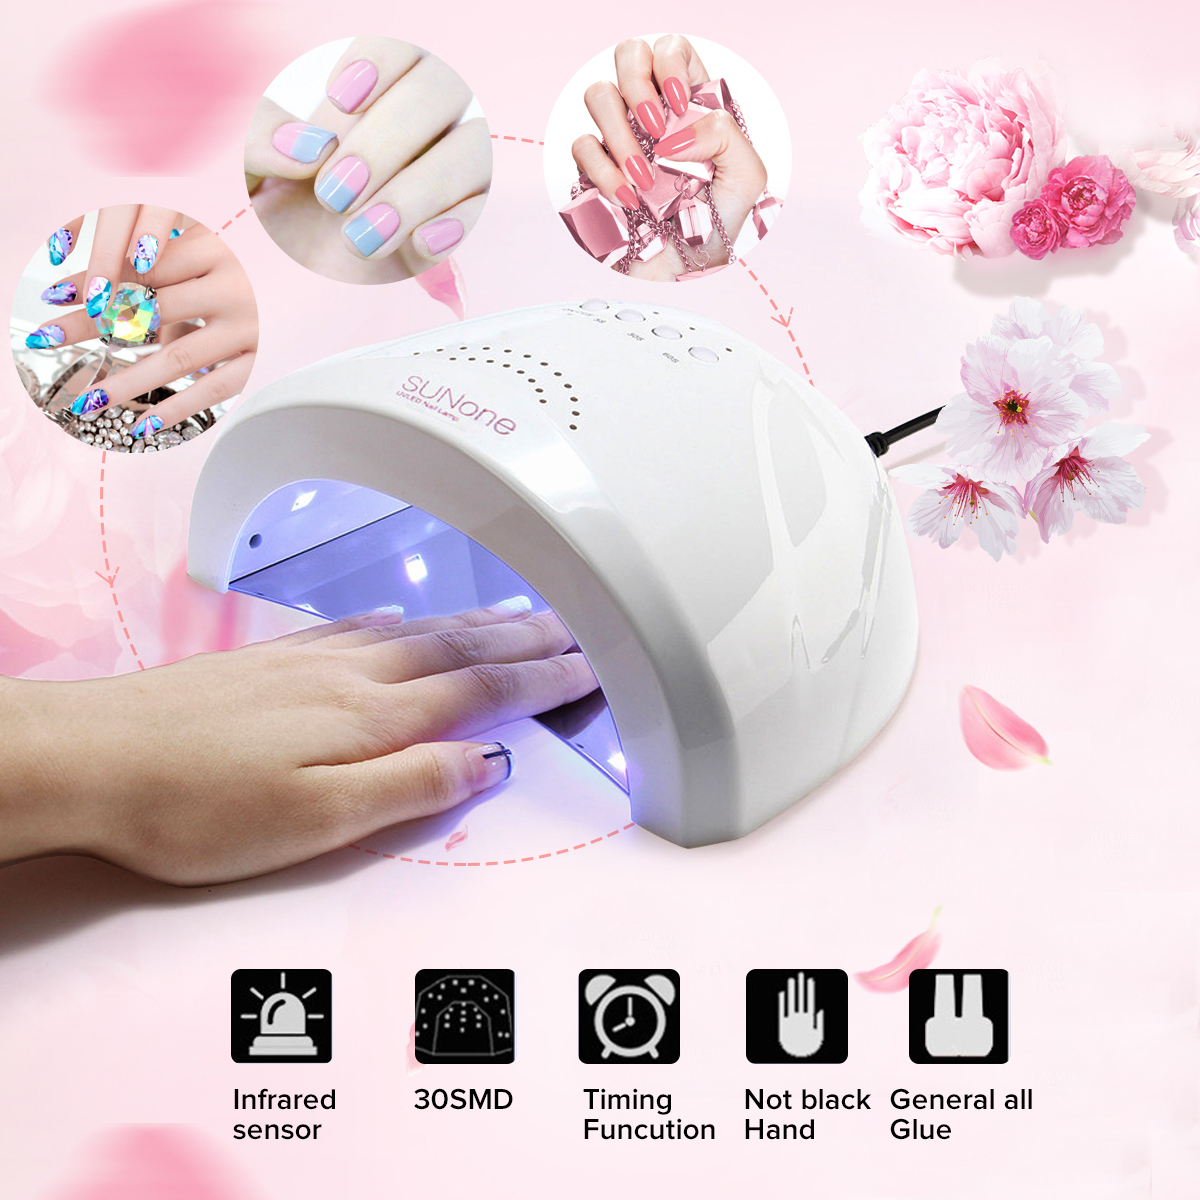 Details About 48w Sunone Led Uv Nail Lamp Nail Dryer Gel Polish Cure Manicure Machine 3 Timer